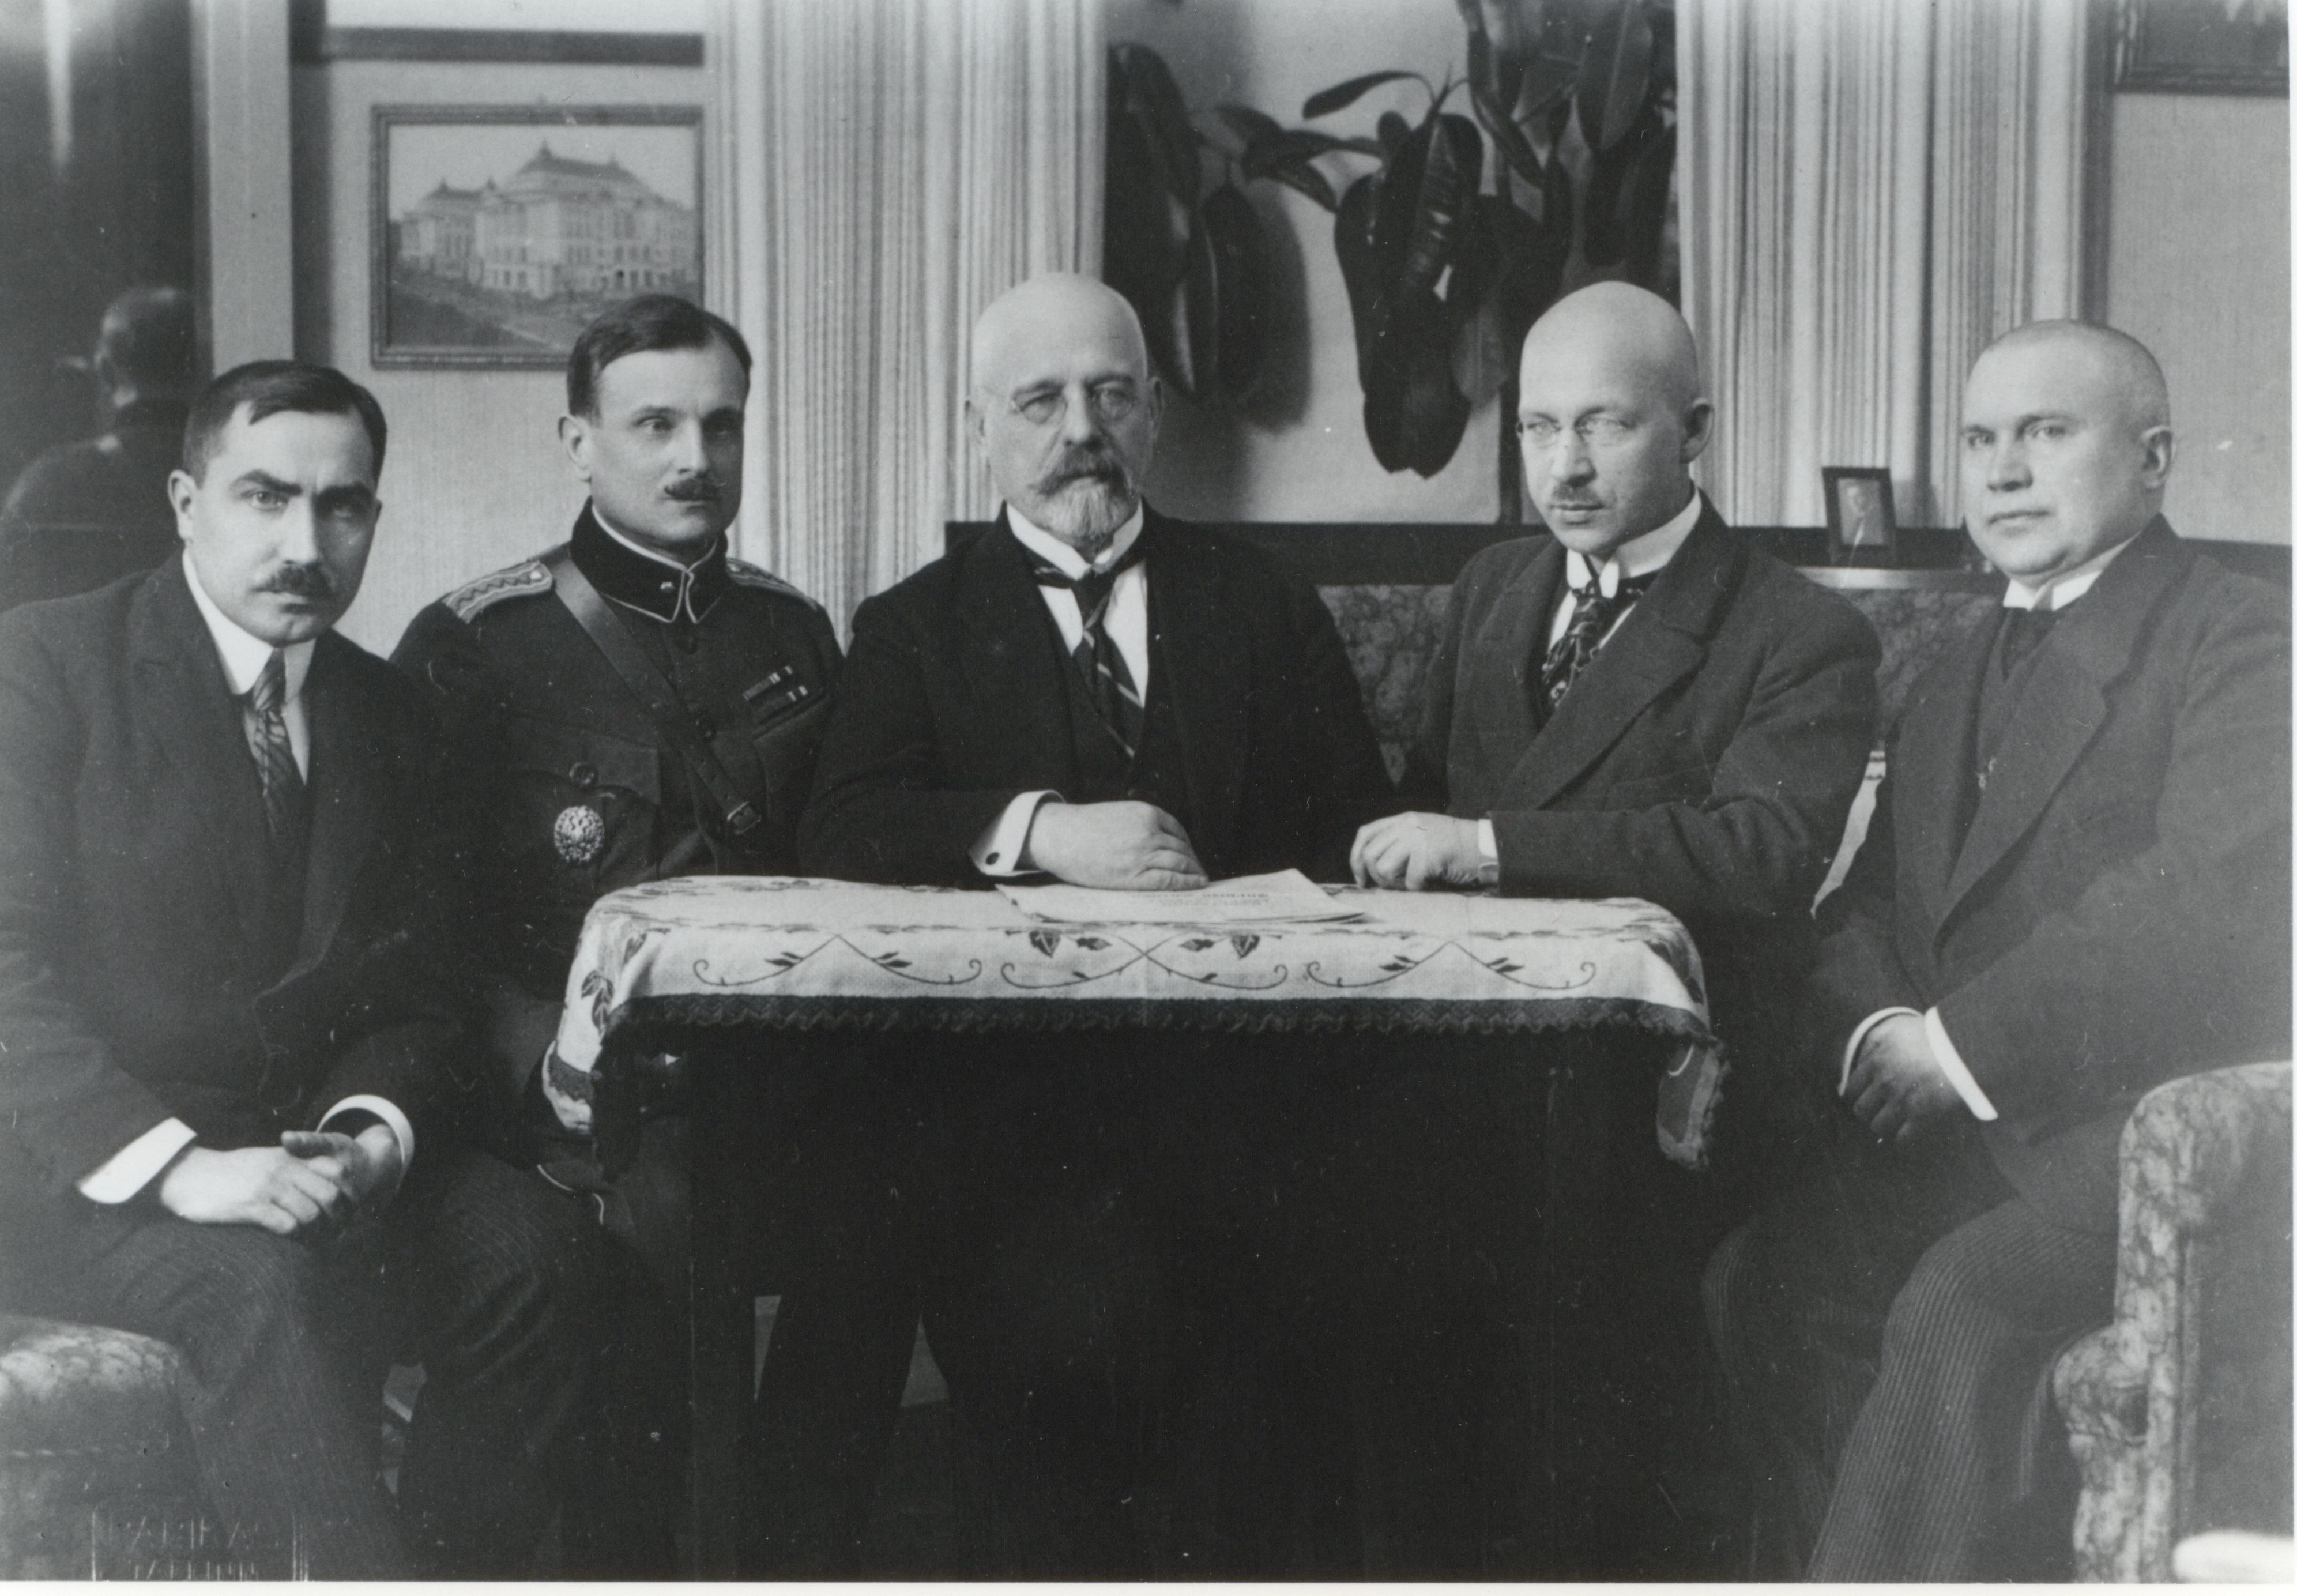 The delegation of the Tartu Peace Treaty. From the left: Ants Piip, Major General Jaan Soots, Chairman of the peace delegation Jaan Poska, Julius Seljamaa, Mait Püüman